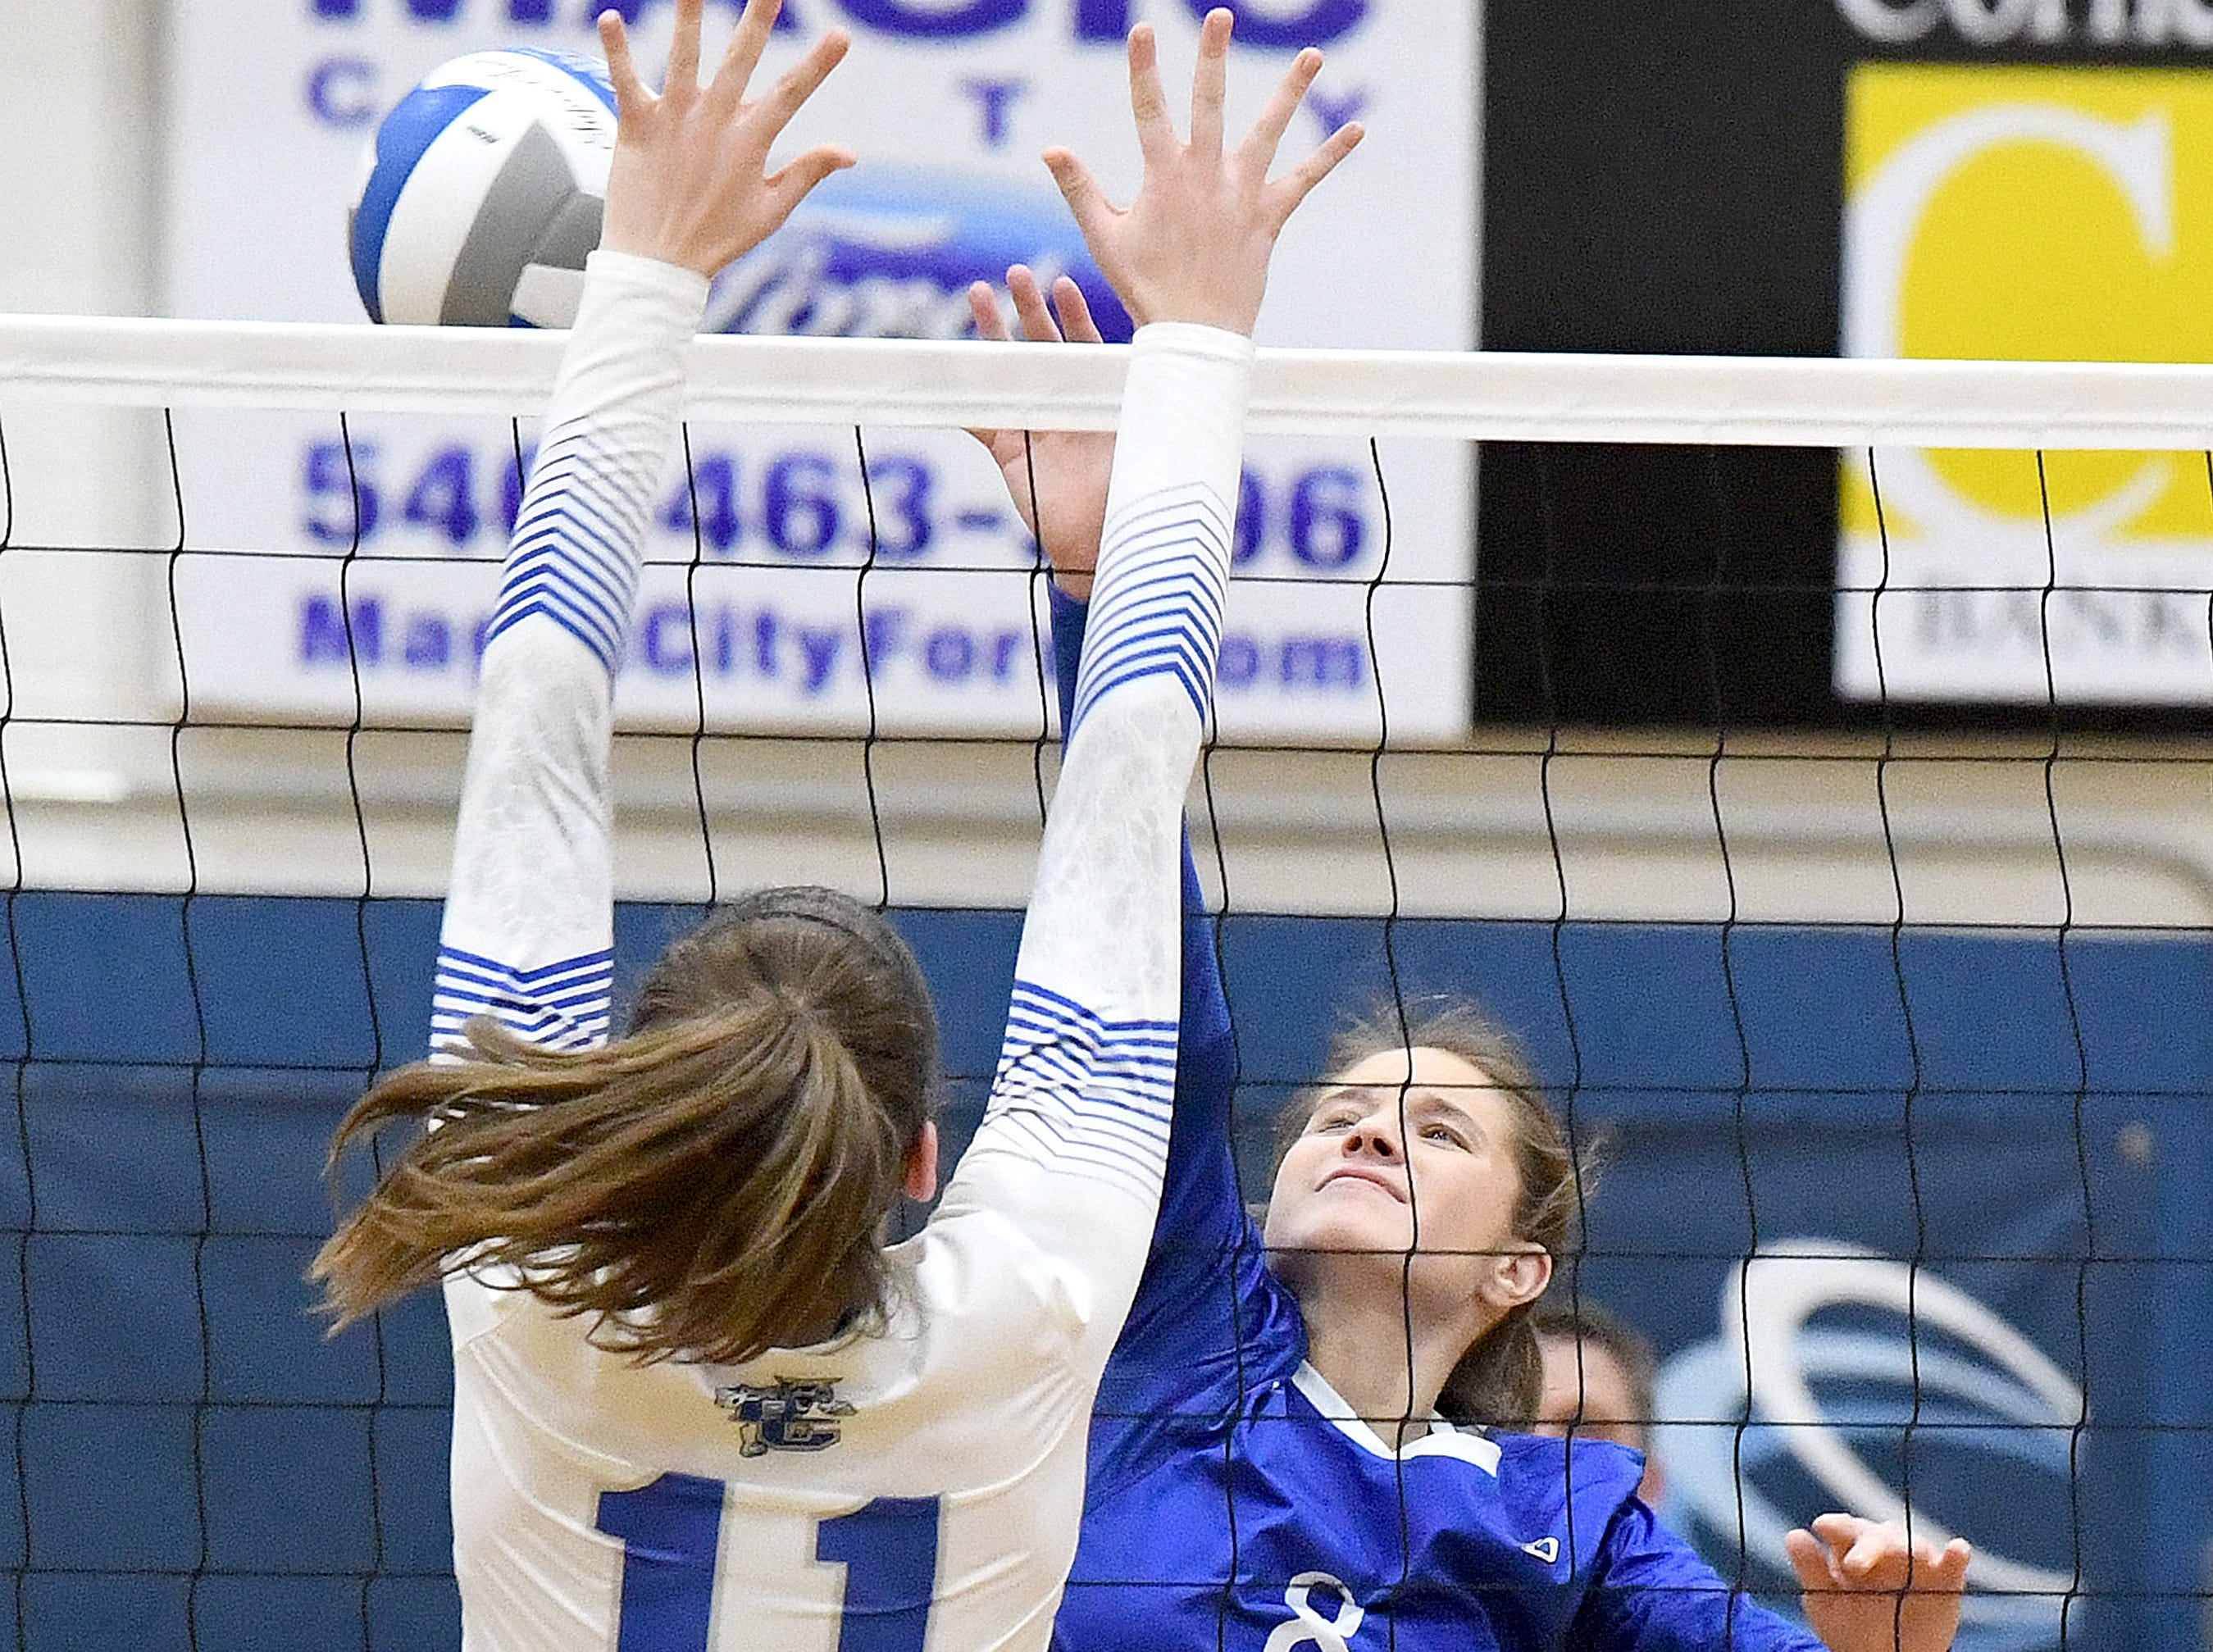 Fort Defiance's Caseuy Mozingo sends the ball back across the net as Rockbridge County's McKenna Mohler tries to block at the net during a Region 3C semifinal match played in Lexington on Monday, Nov. 5, 2018.